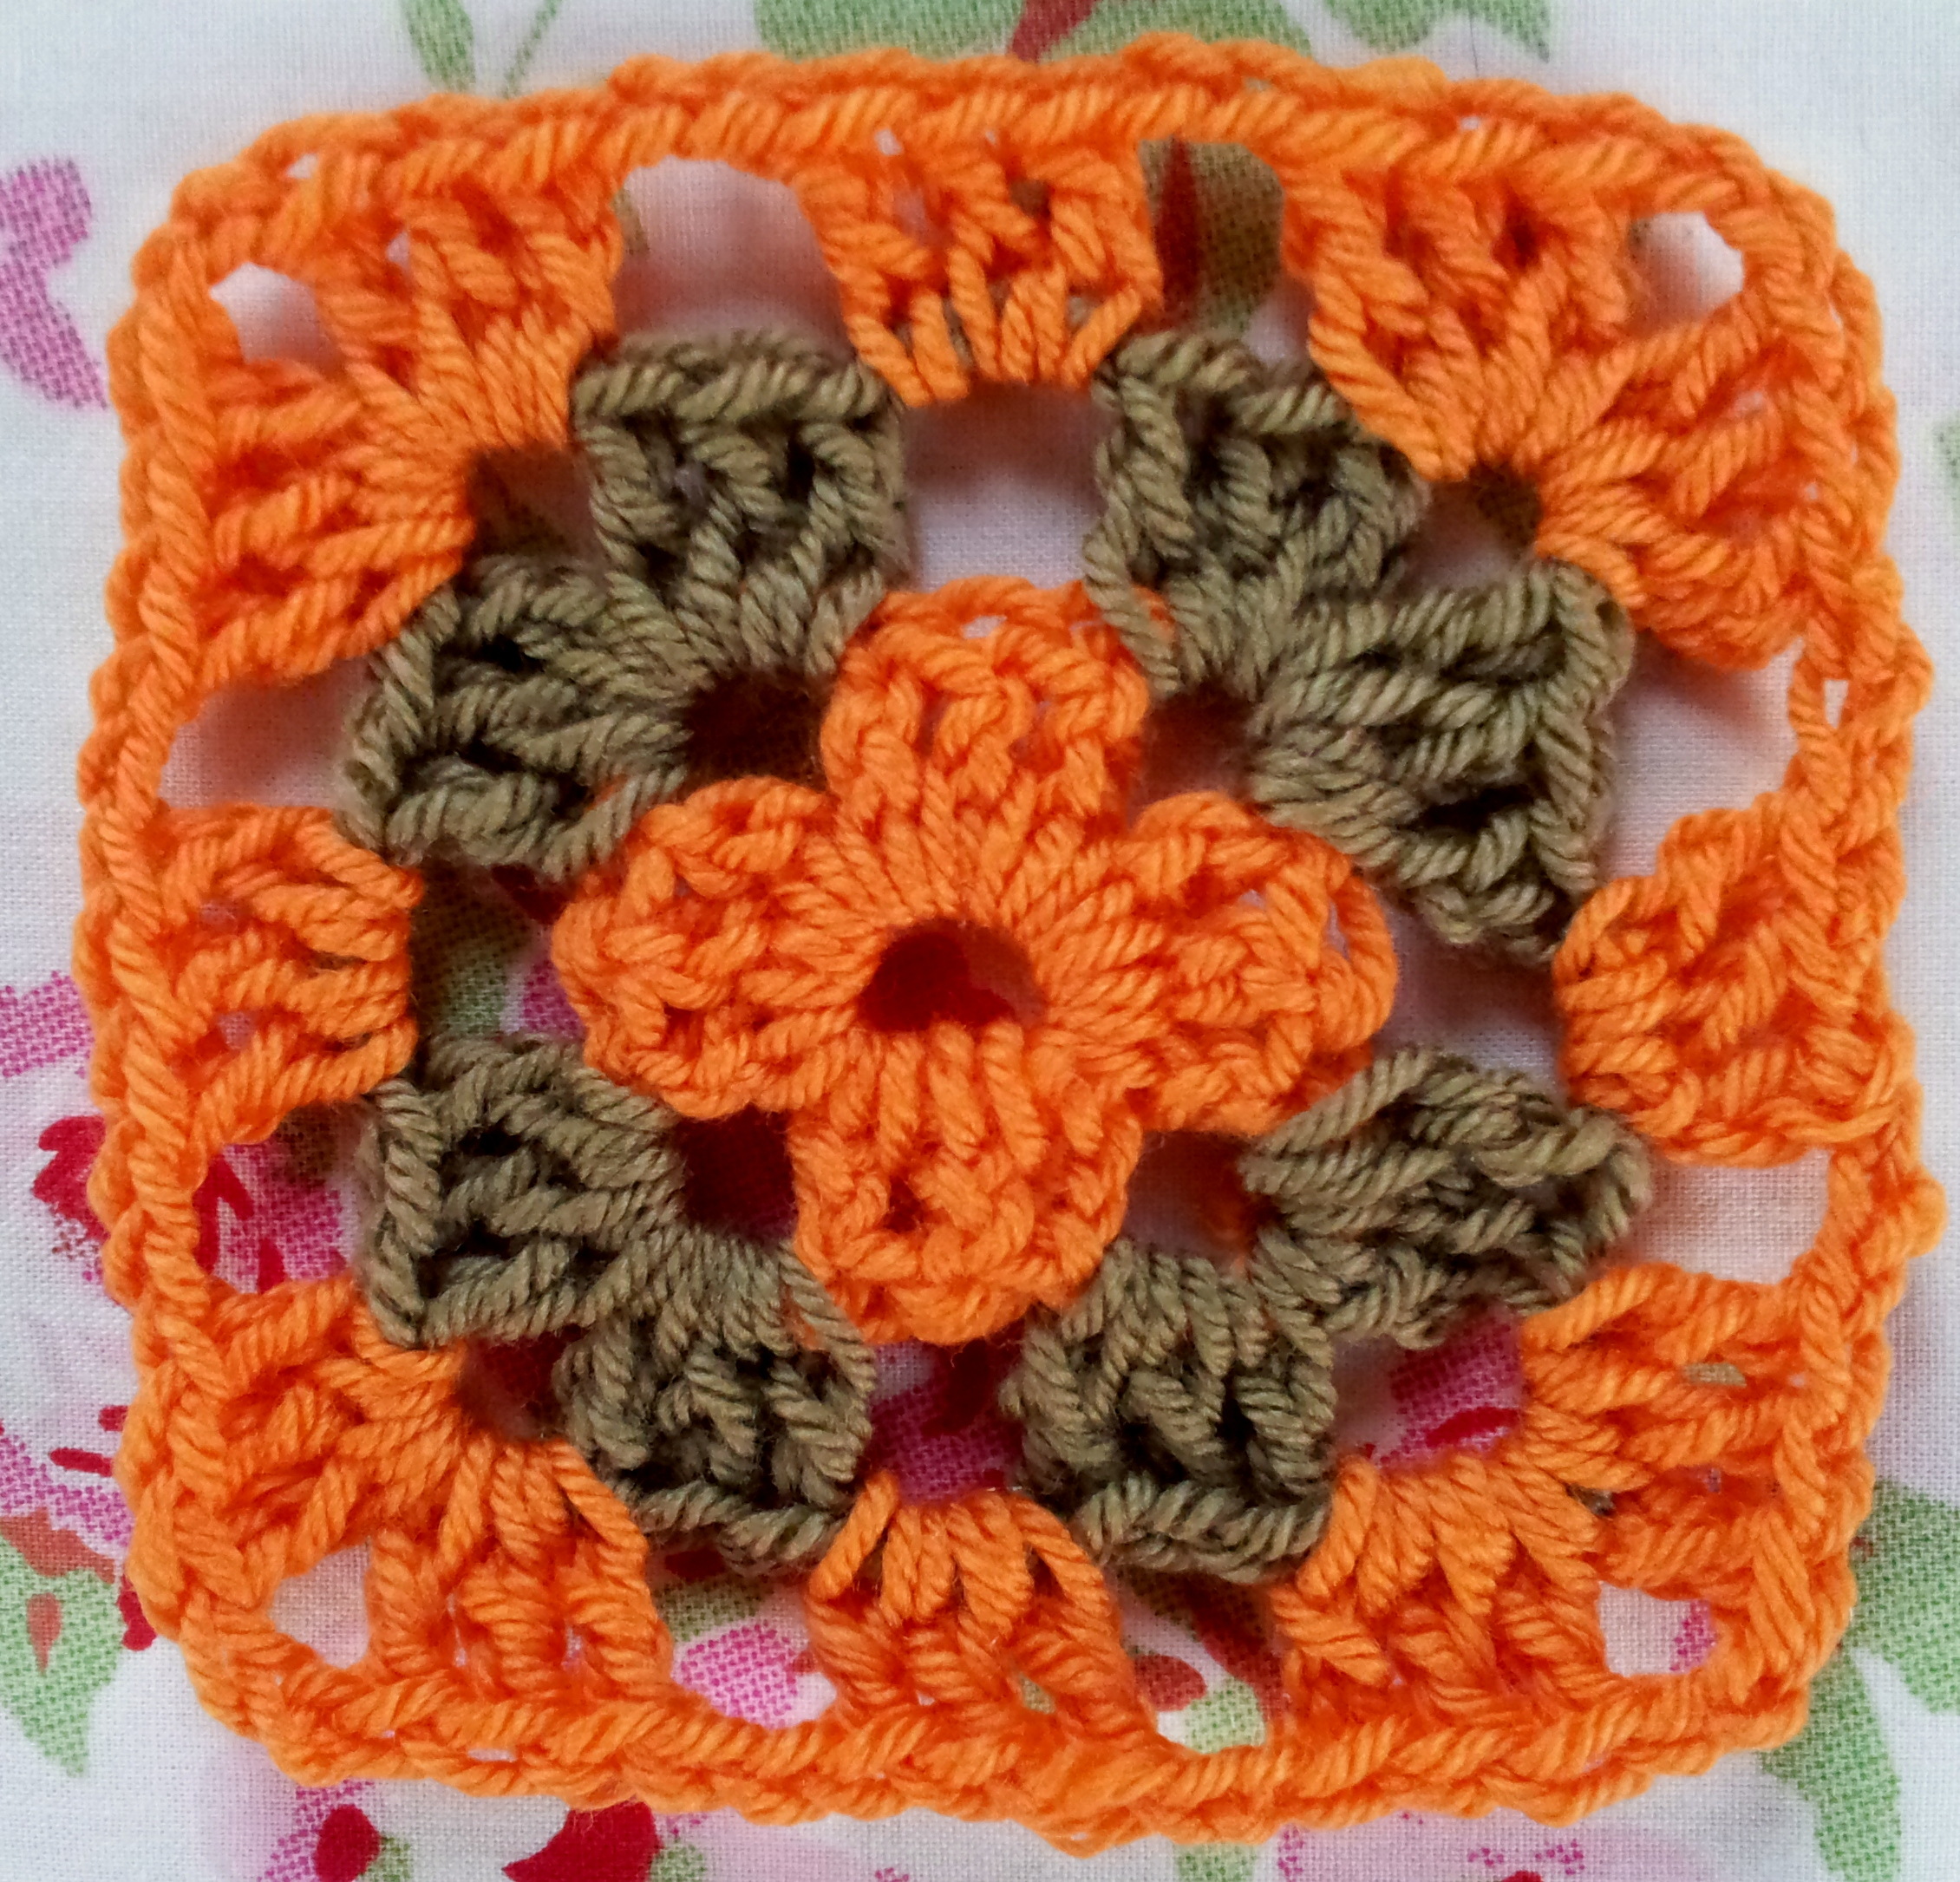 Crochet Easy Granny Square Patterns : The Infamous Granny Square thestitchsharer